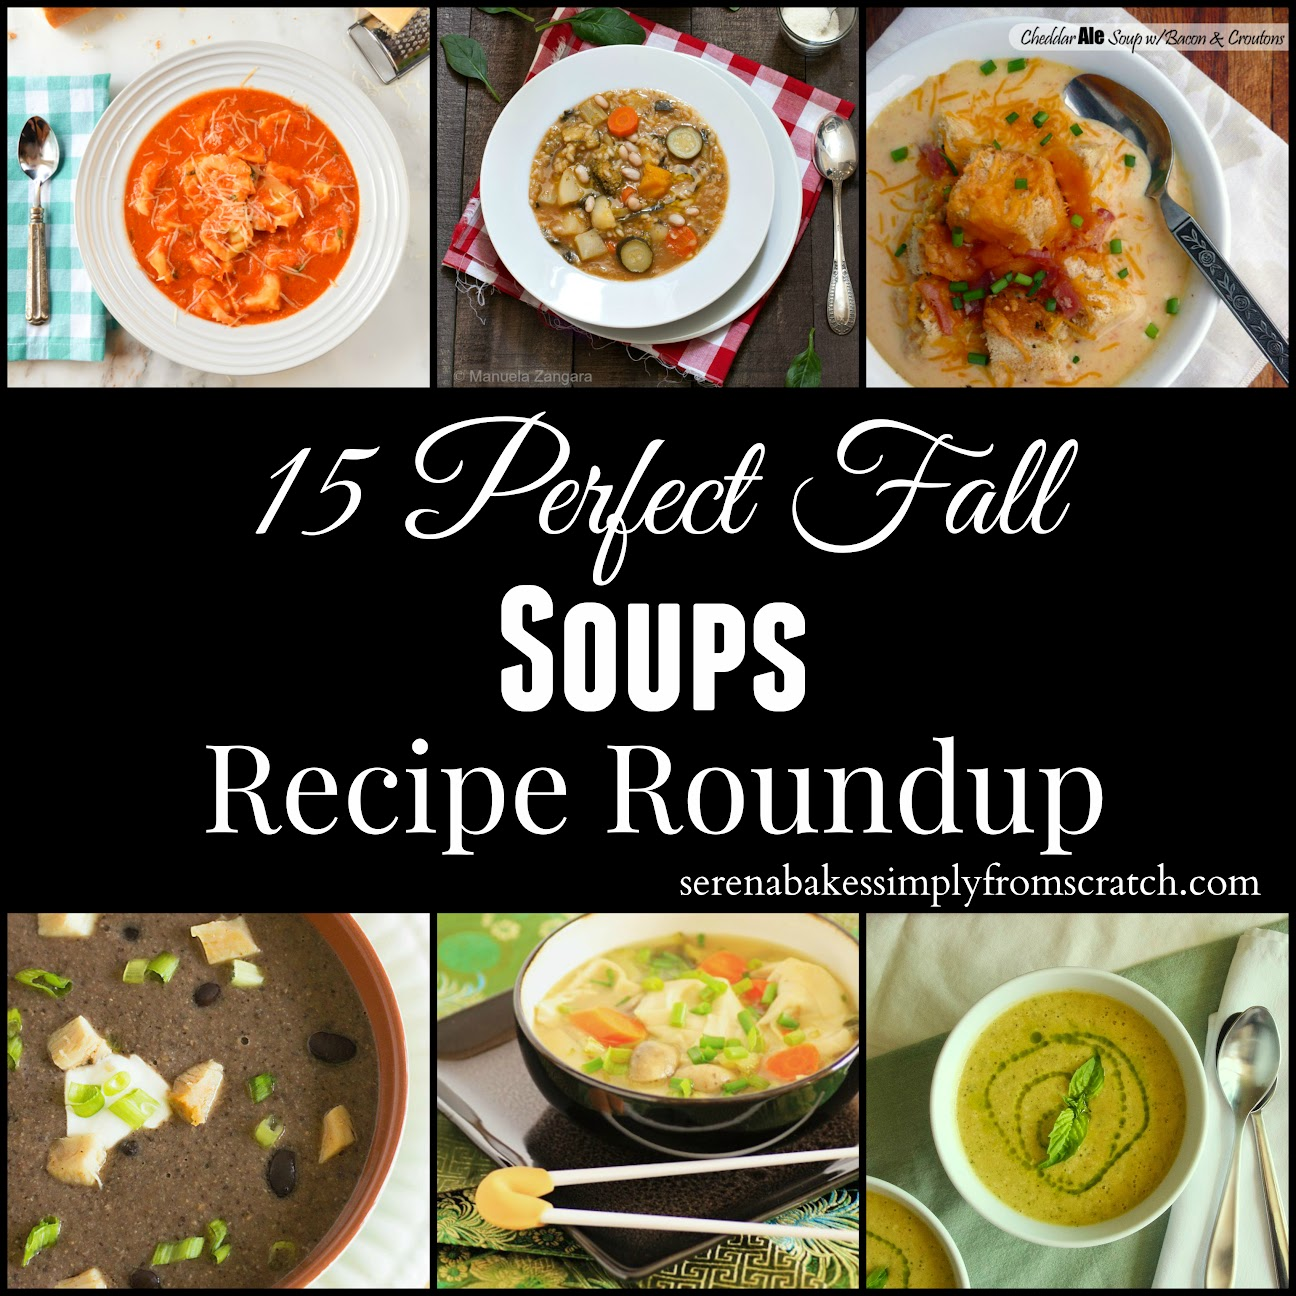 15 Perfect Fall Soups Recipe Roundup